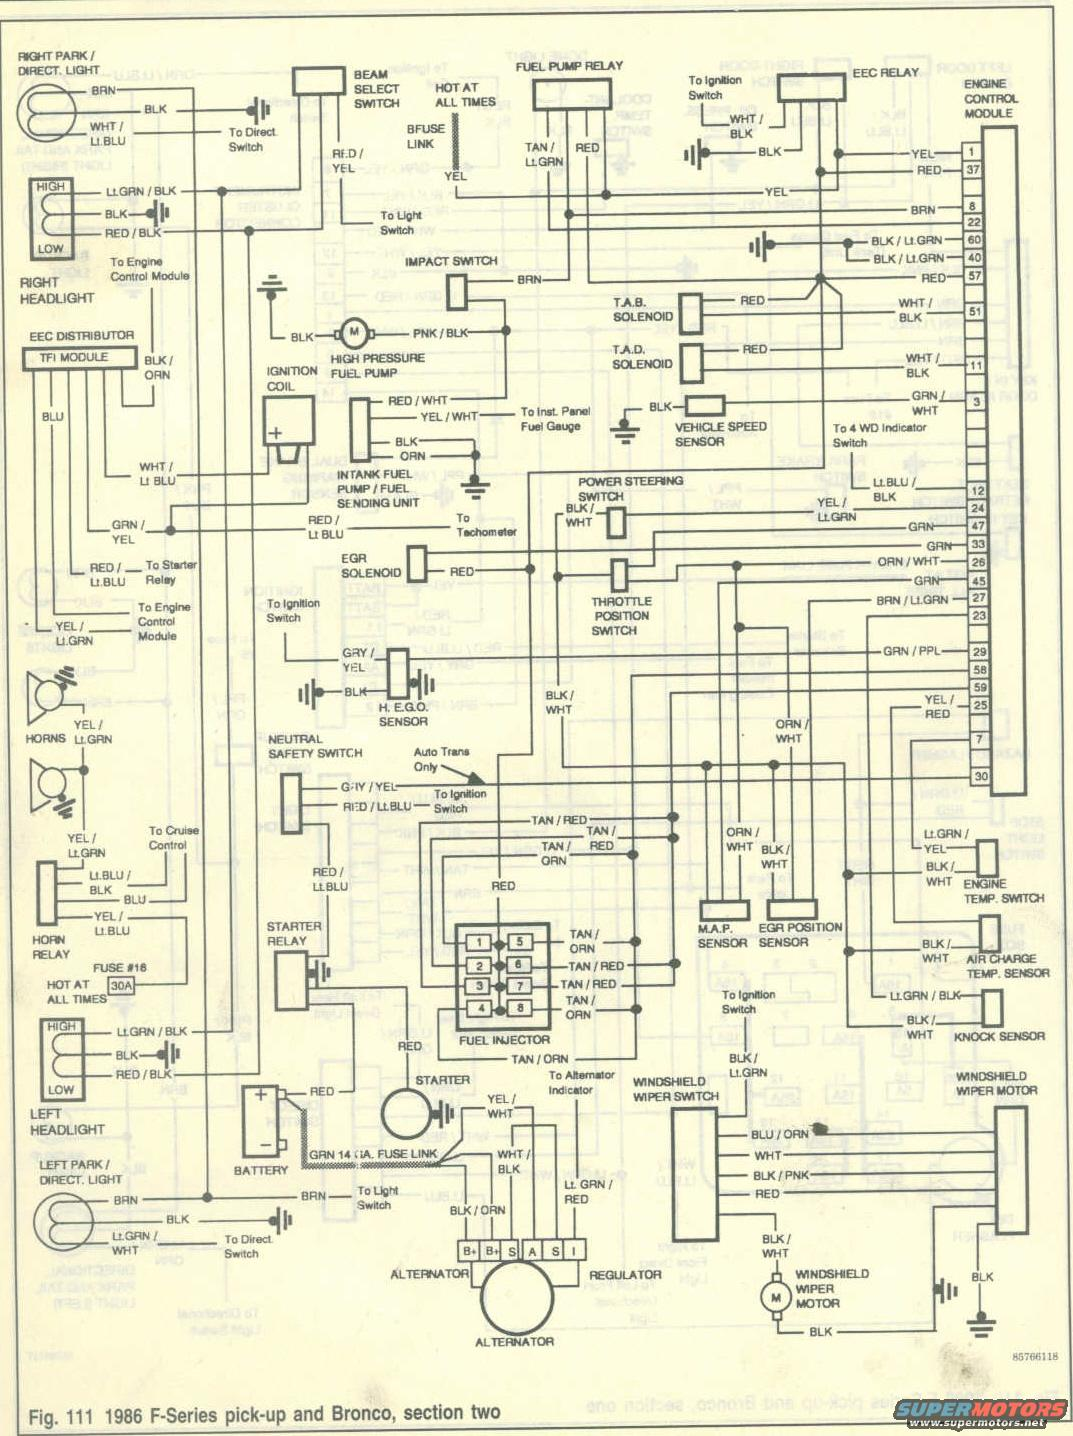 86-bronco-wiring-diagram-section-2.jpg | Hits: 8137 | Posted on: 6/30/08 |  View Low-Res